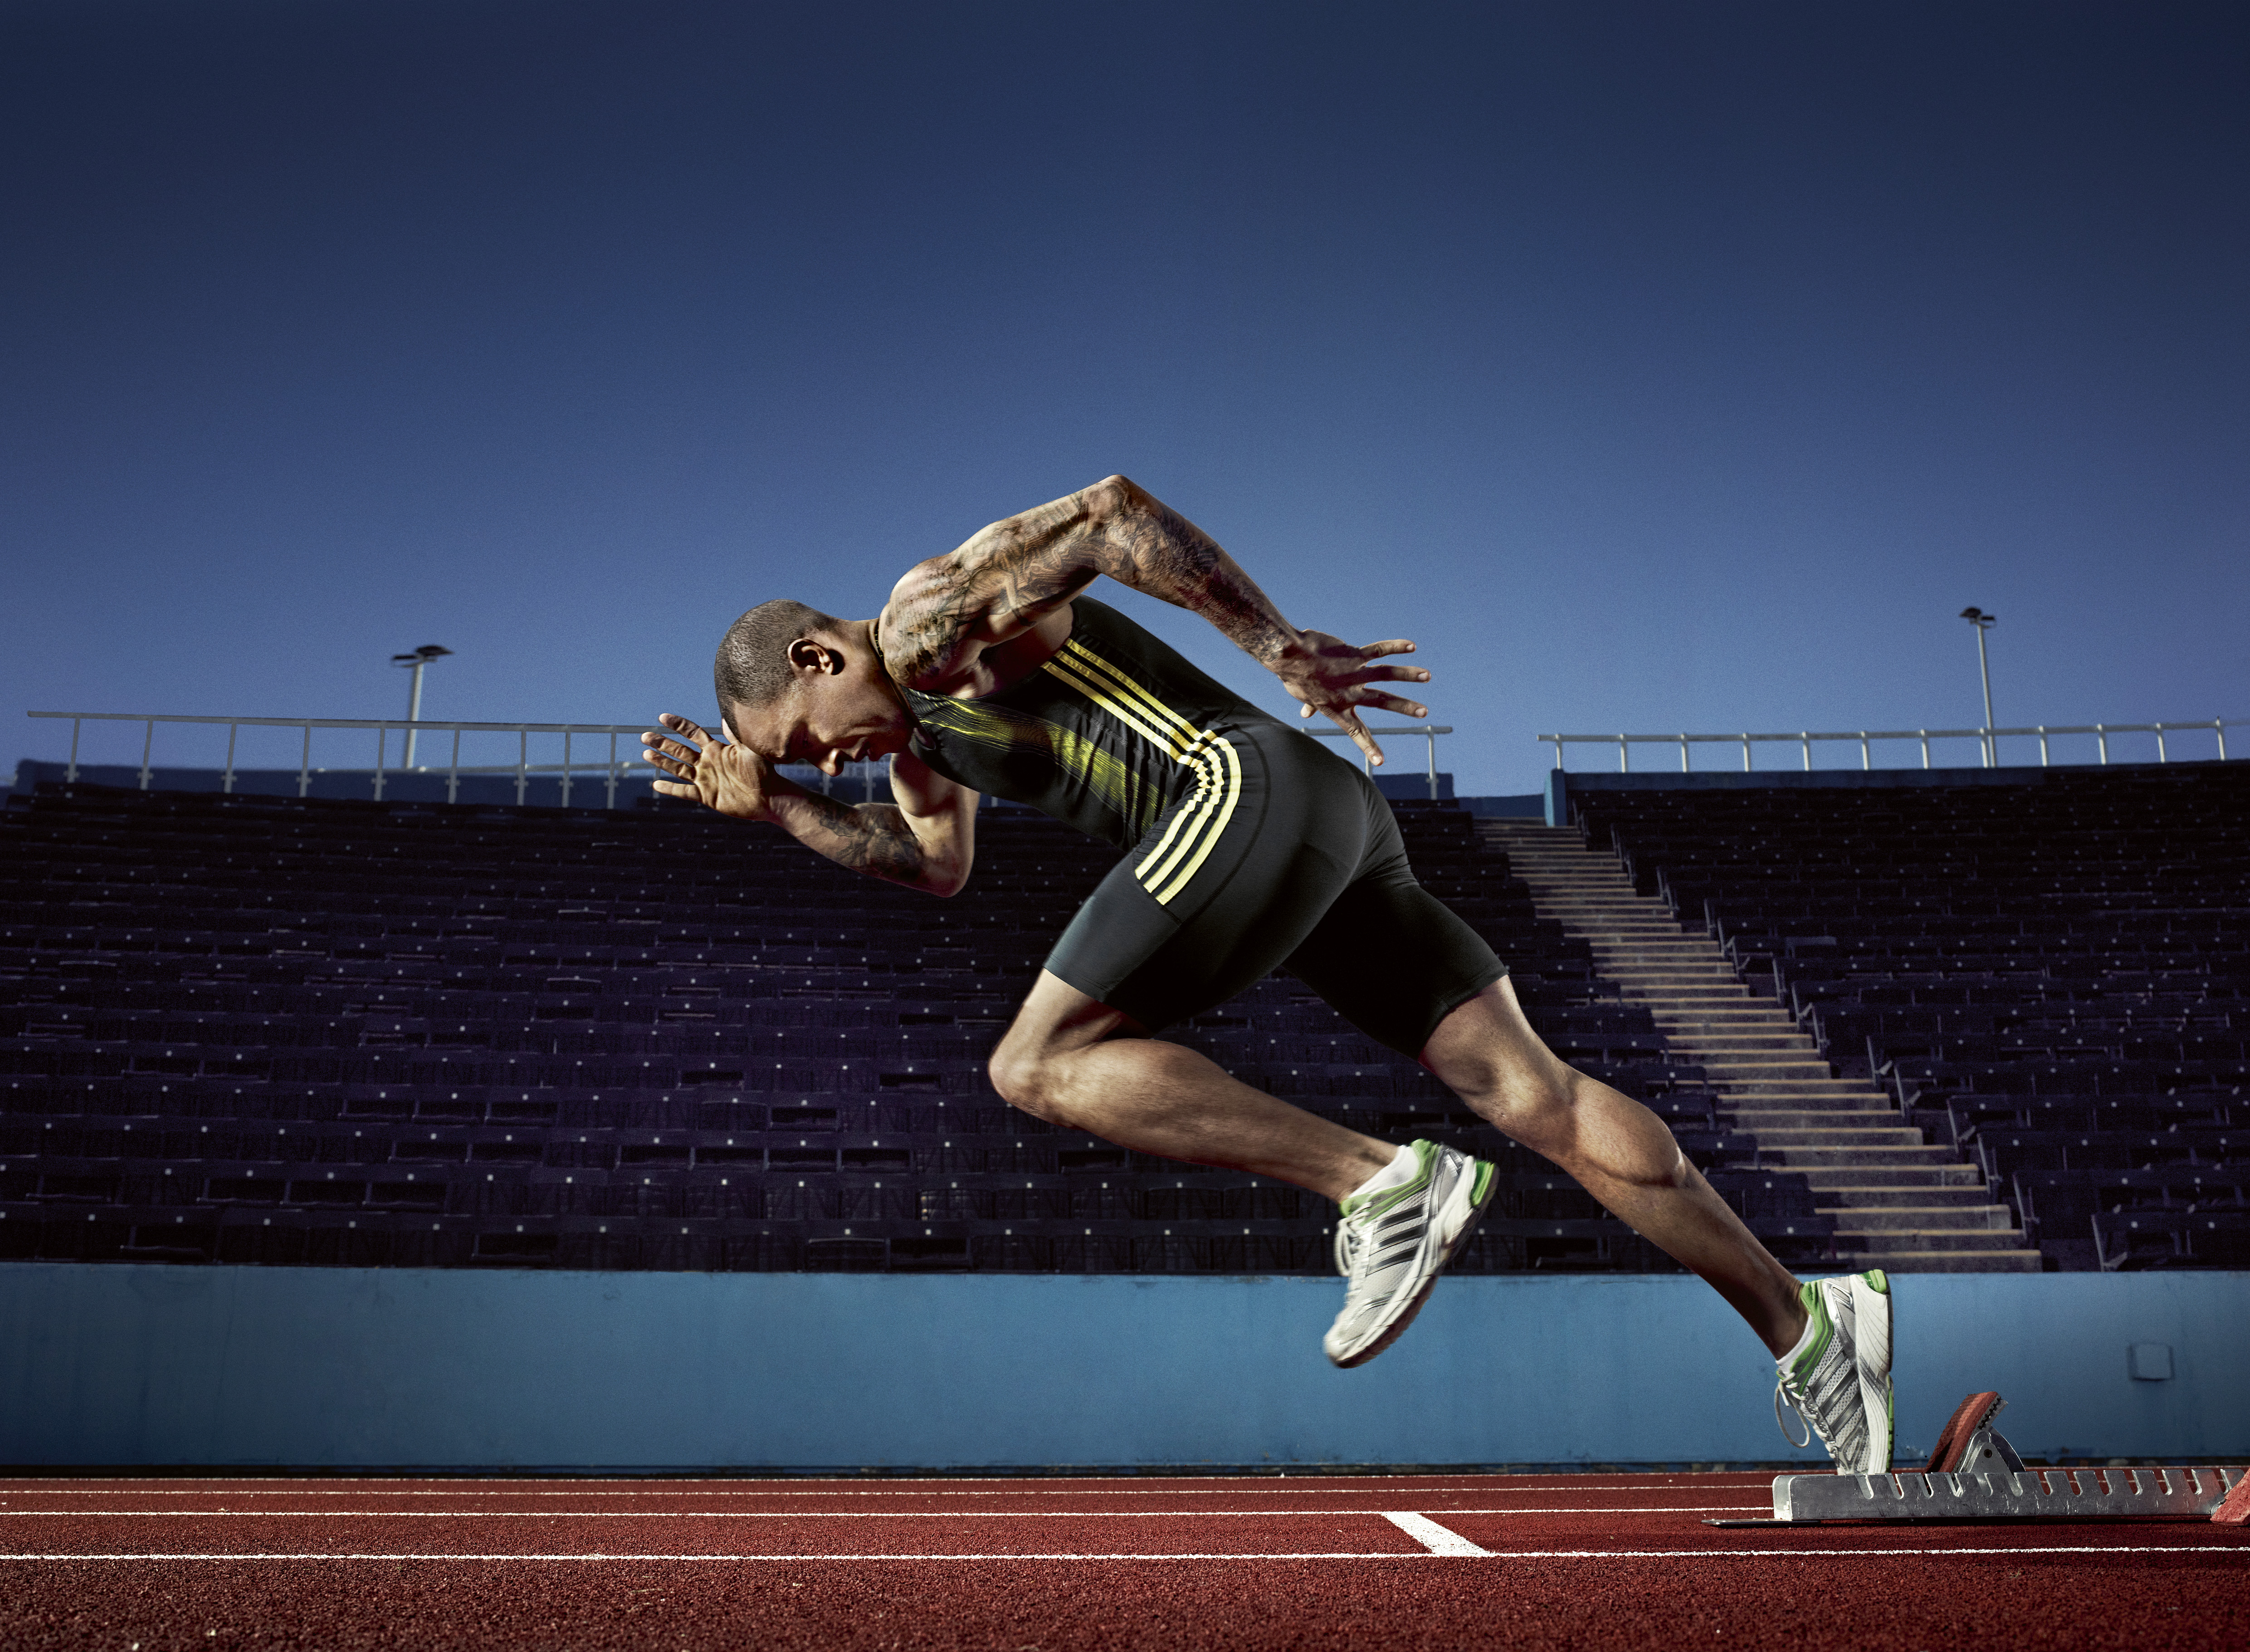 22 Hd Sports Wallpapers Backgrounds Images: Athletes Runners Wallpapers High Quality